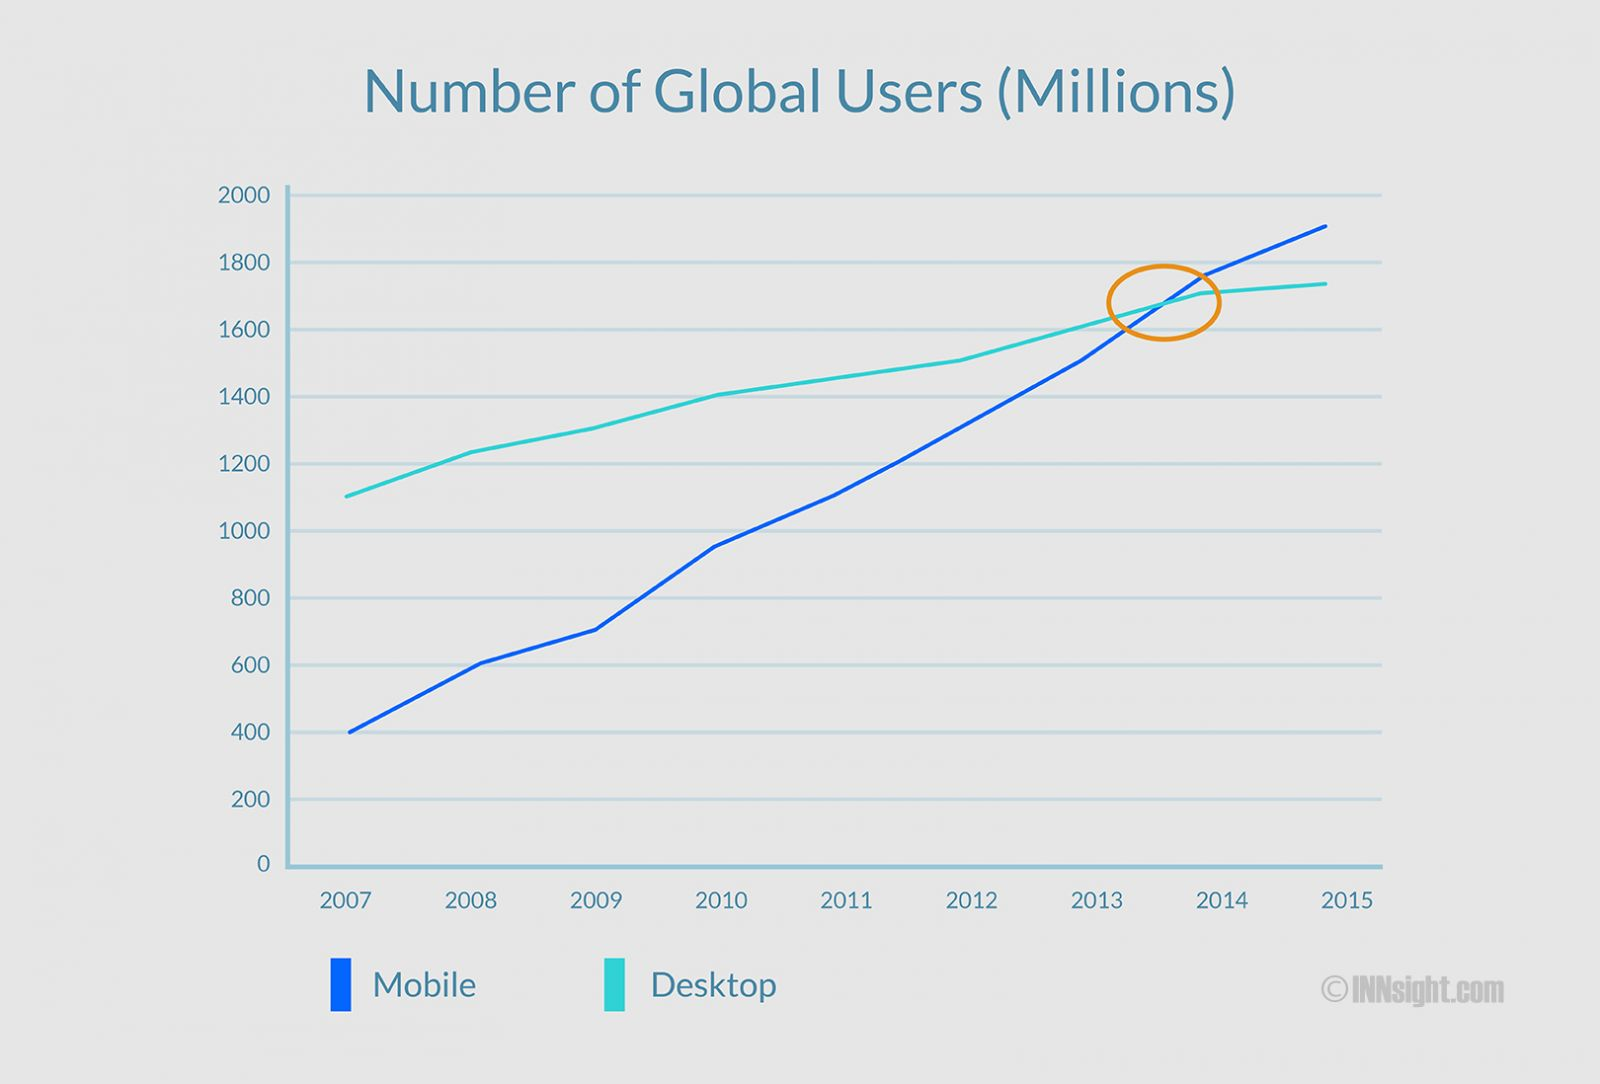 Mobile and Desktop Users in World